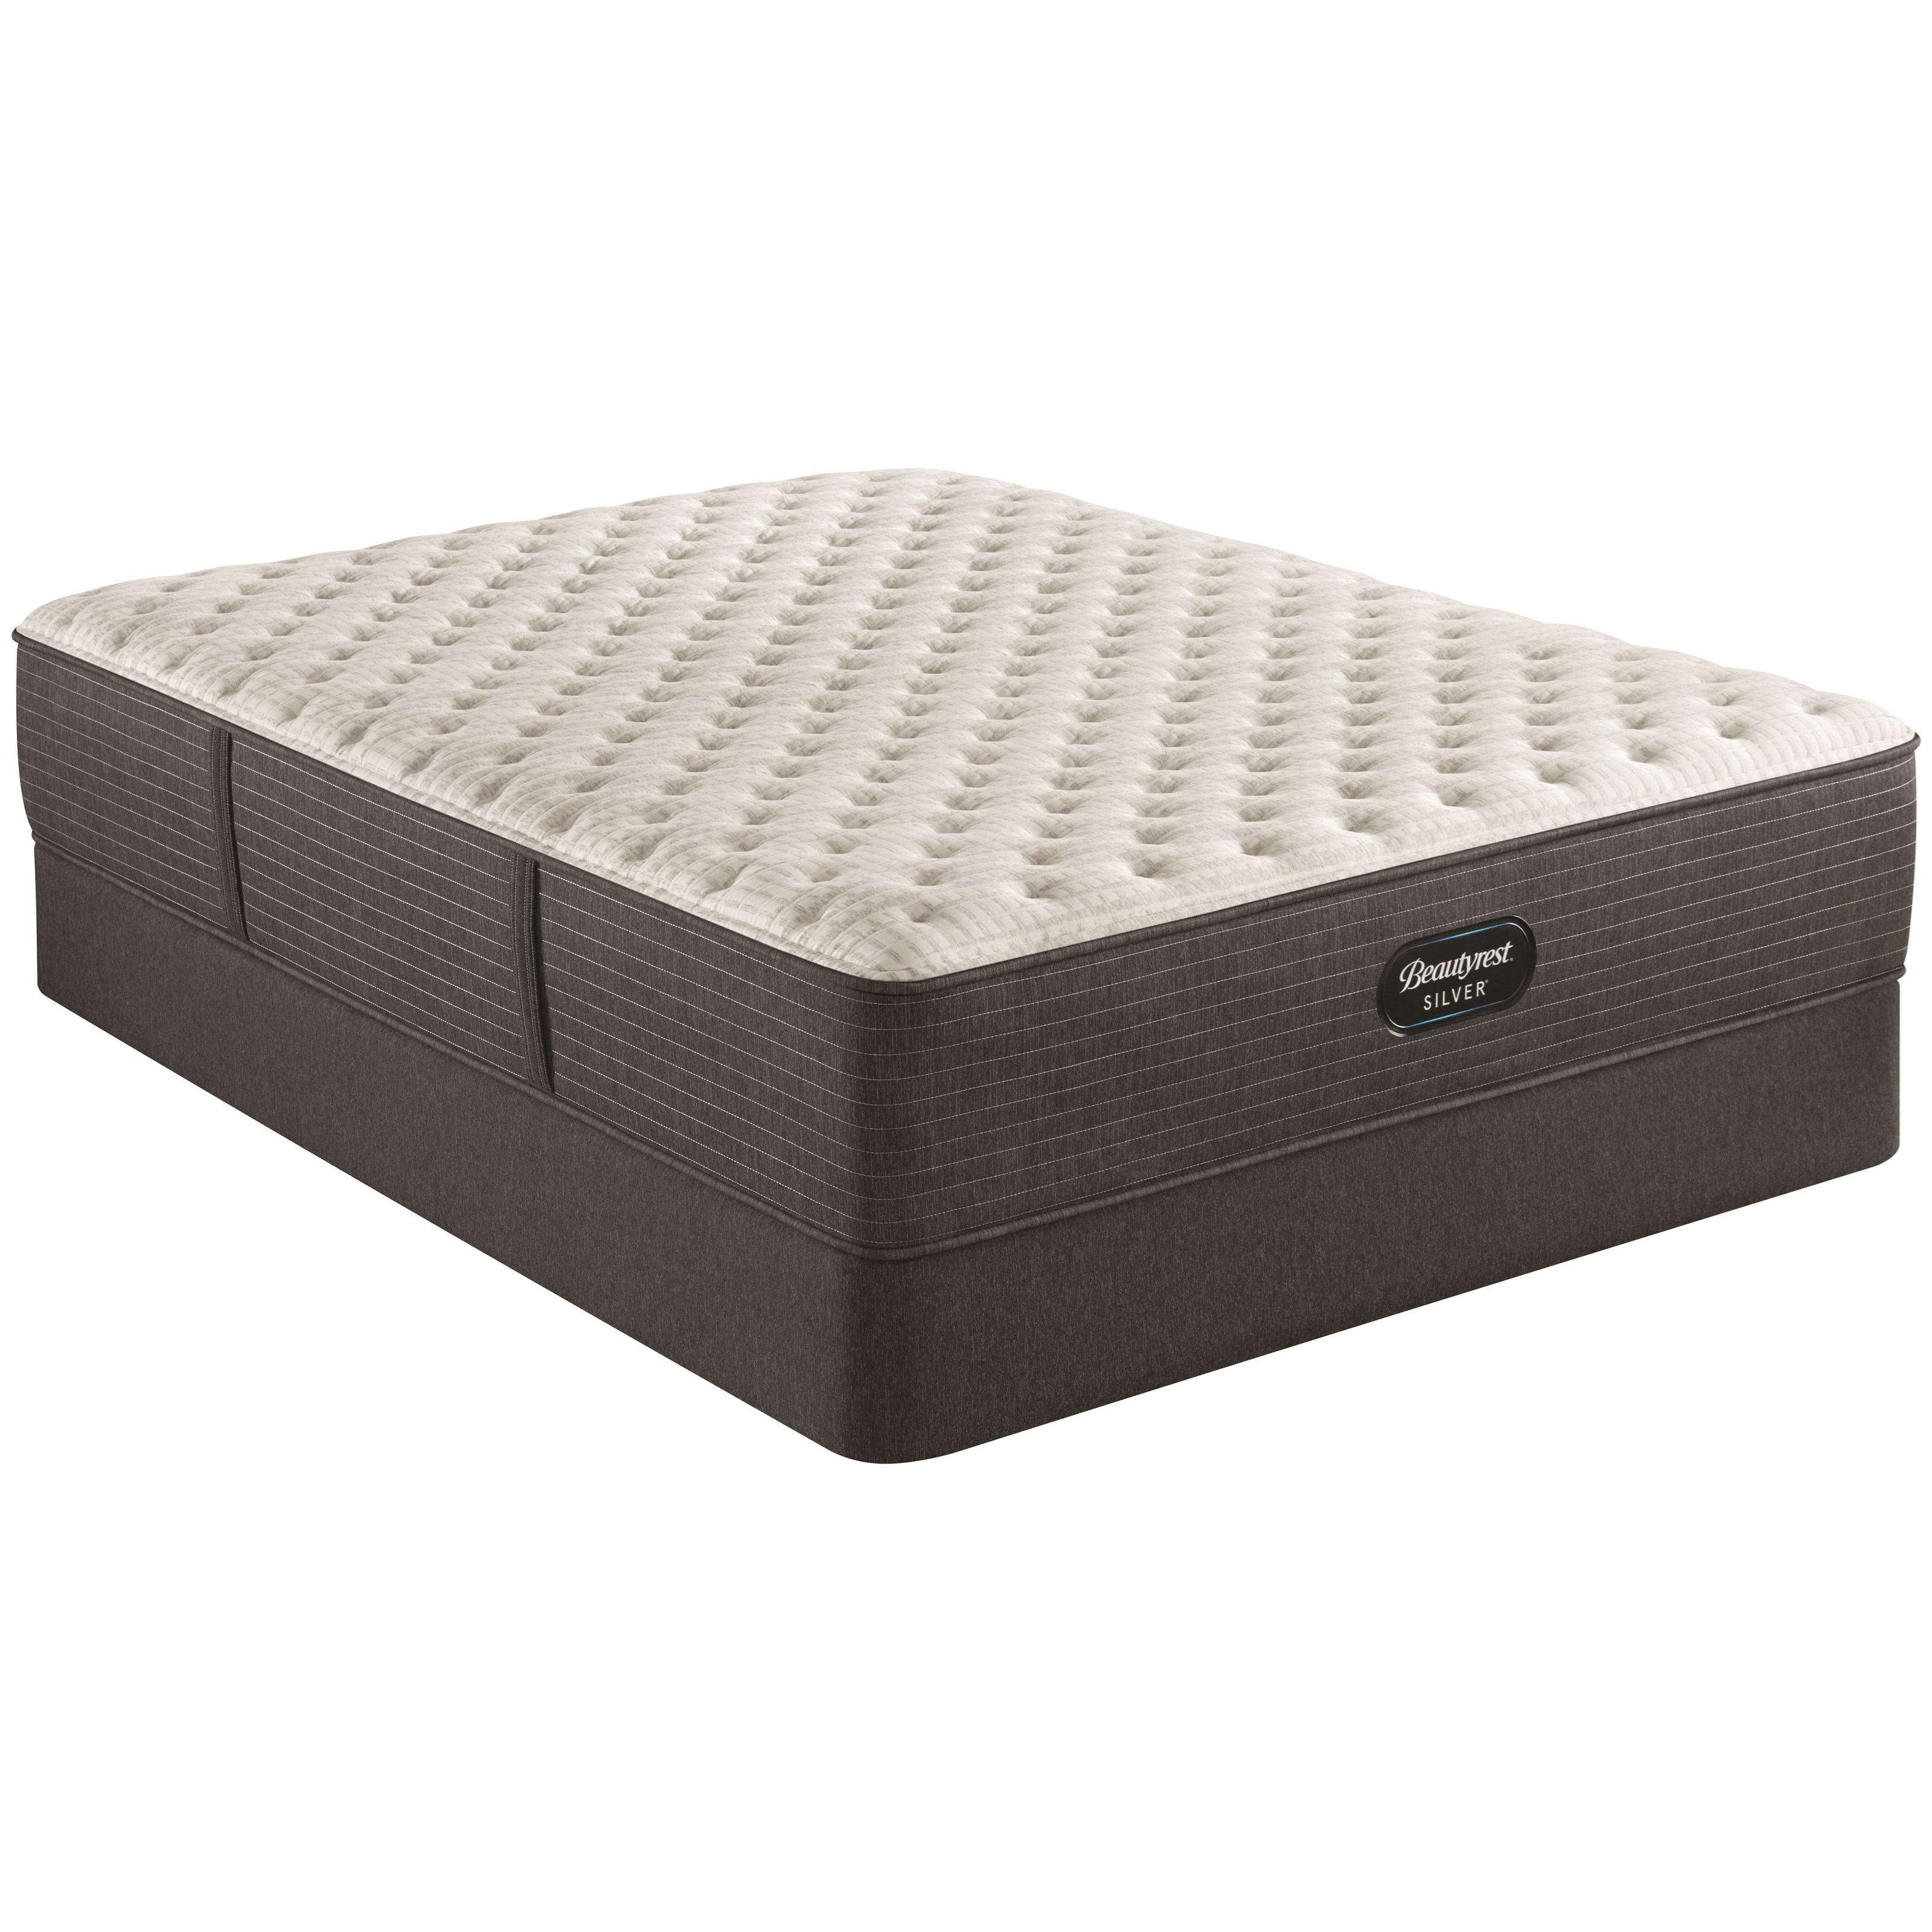 """BRS900-C XF Cal King 13 3/4"""" Pocketed Coil Mattress Set by Beautyrest at Darvin Furniture"""